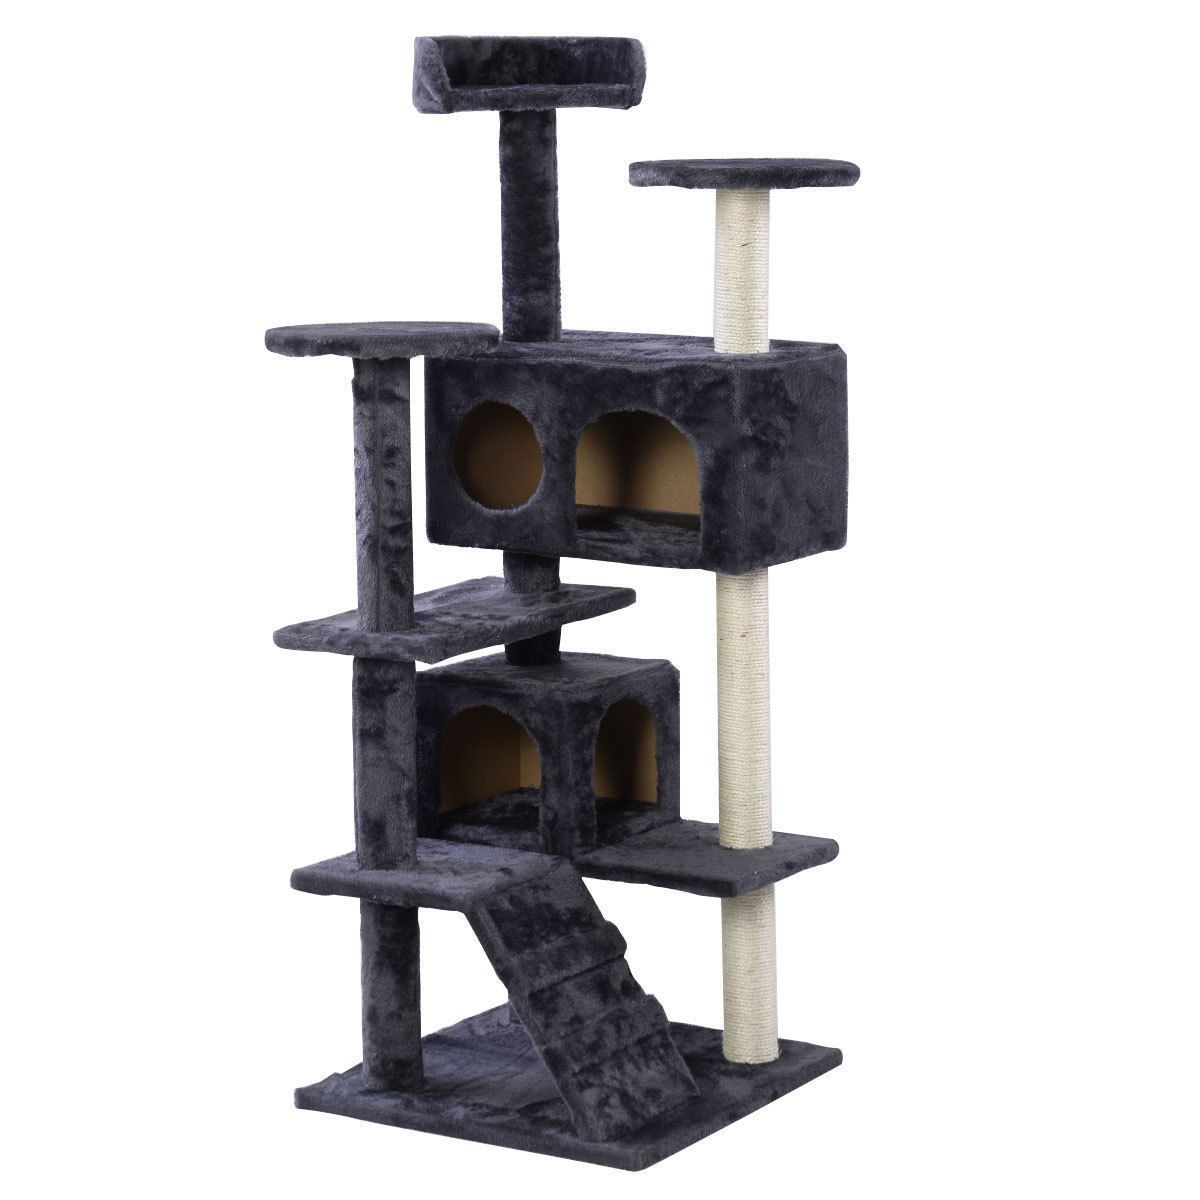 "New 60"" Cat Tree Tower Condo Scratcher Furniture Kitten Pet House Hammock Gray https://t.co/V8ExHzVRwa https://t.co/qnRDNNrjTR"